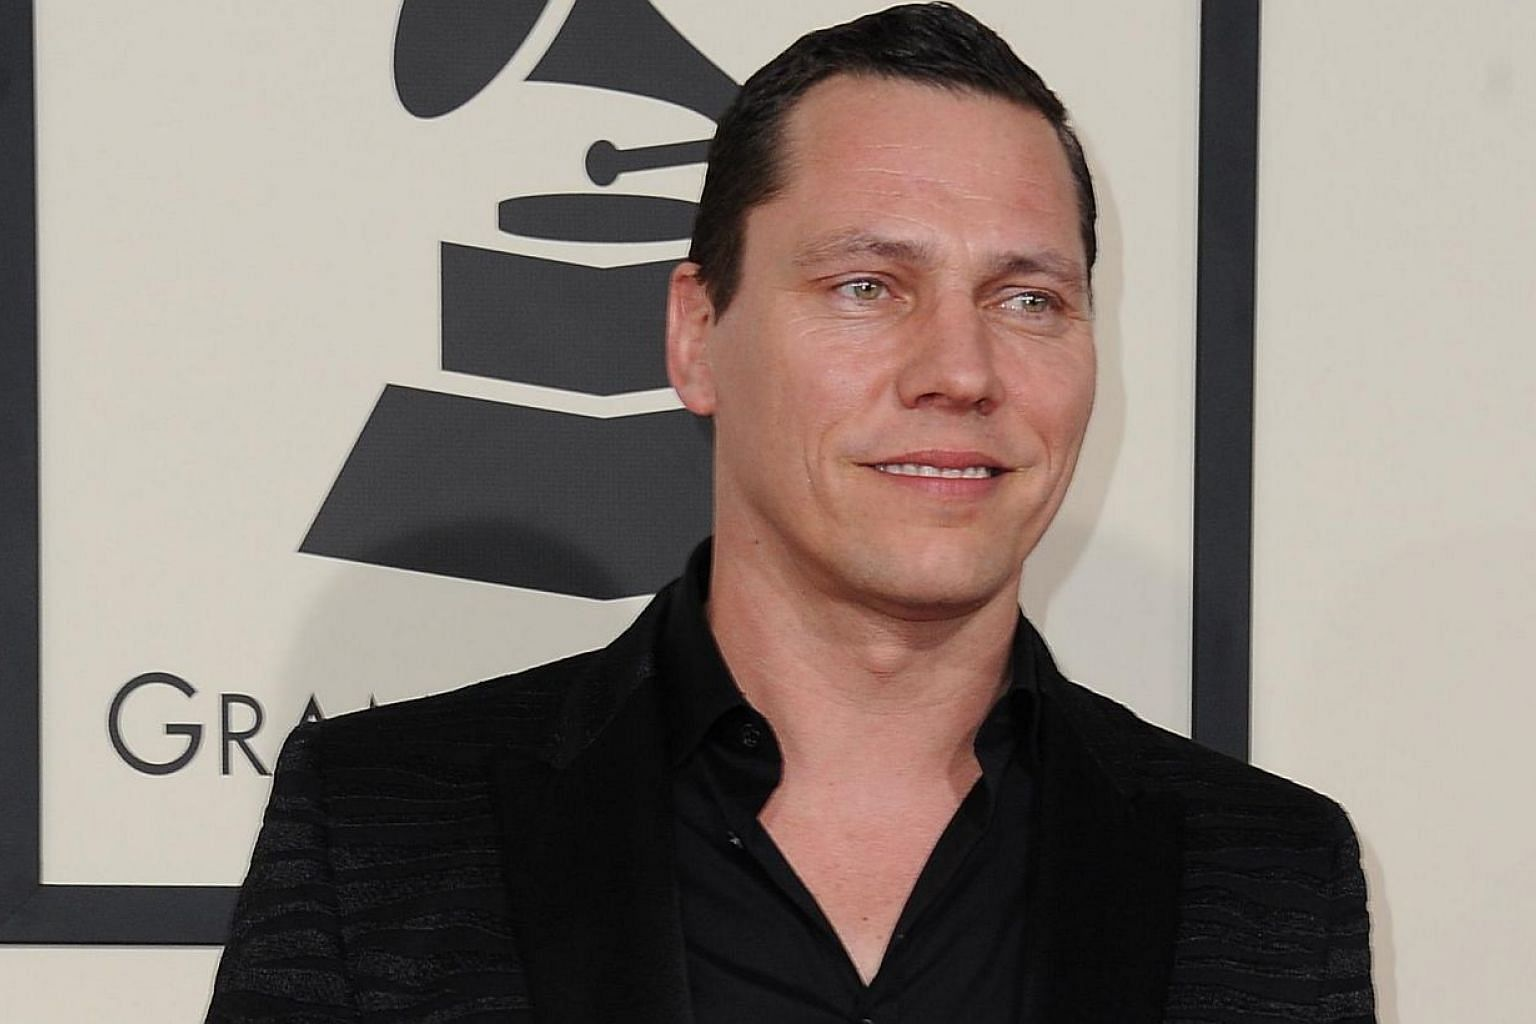 Tiesto, one of the biggest names in dance music, on Monday released without warning a new mix album that is inspired by the New York club scene. -- PHOTO: AFP